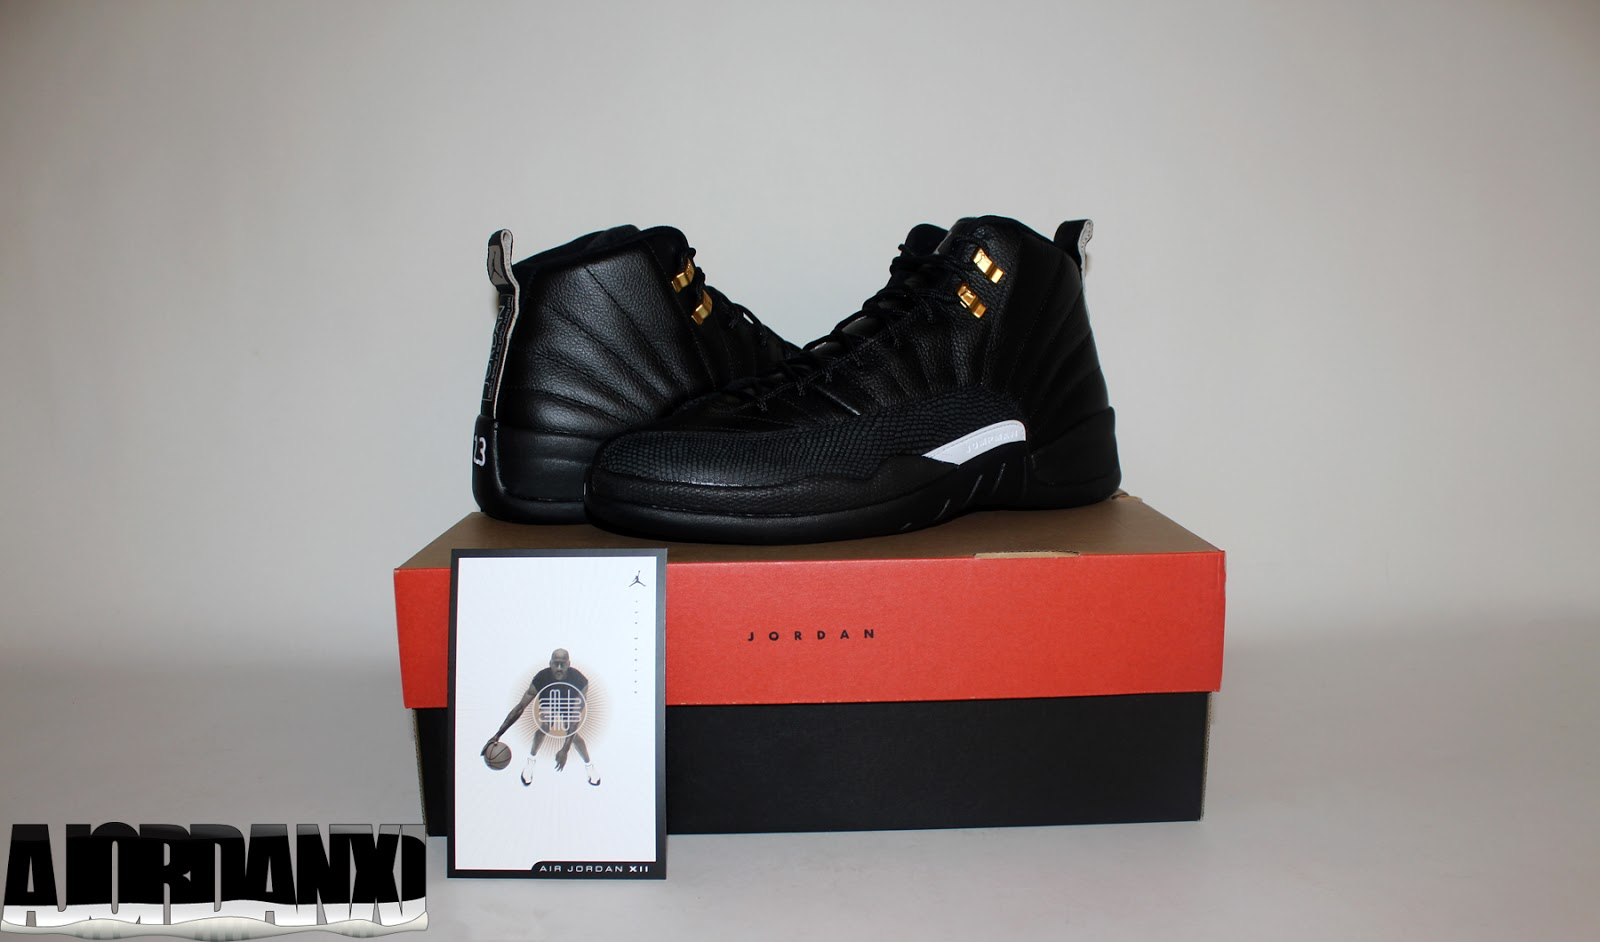 newest e5be1 8dc57 After a few last minute releases in 2013, followed by a collaboration with  PSNY in late 2015, the Air Jordan 12 Retro is set for a lengthy run  throughout ...